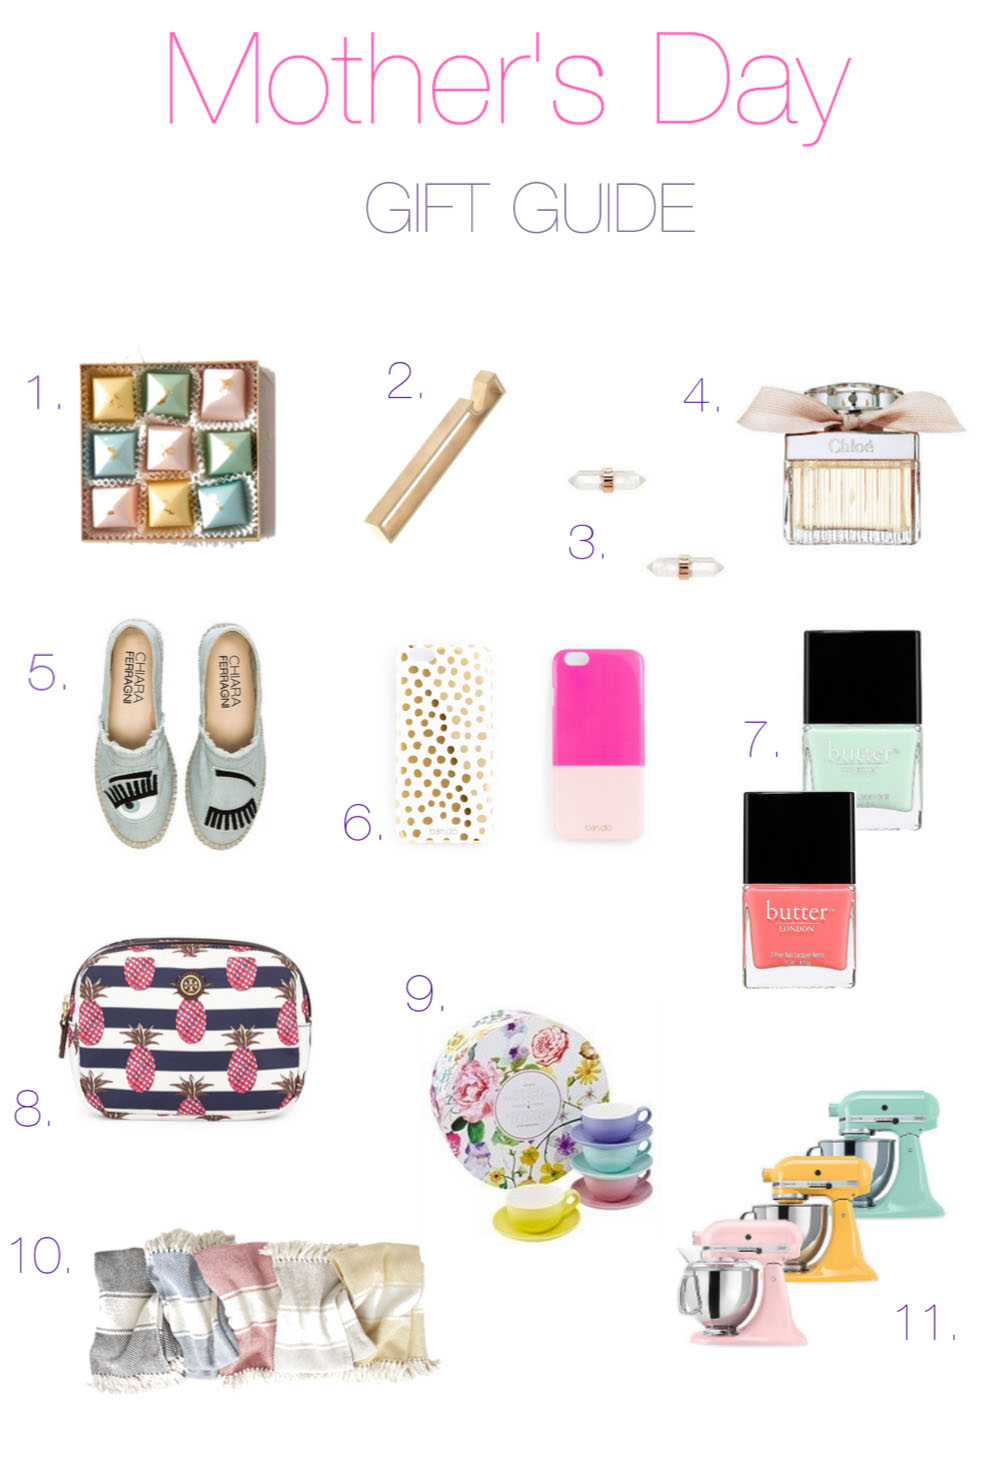 Mothers Day Gift Guide - 204 Park.jpg